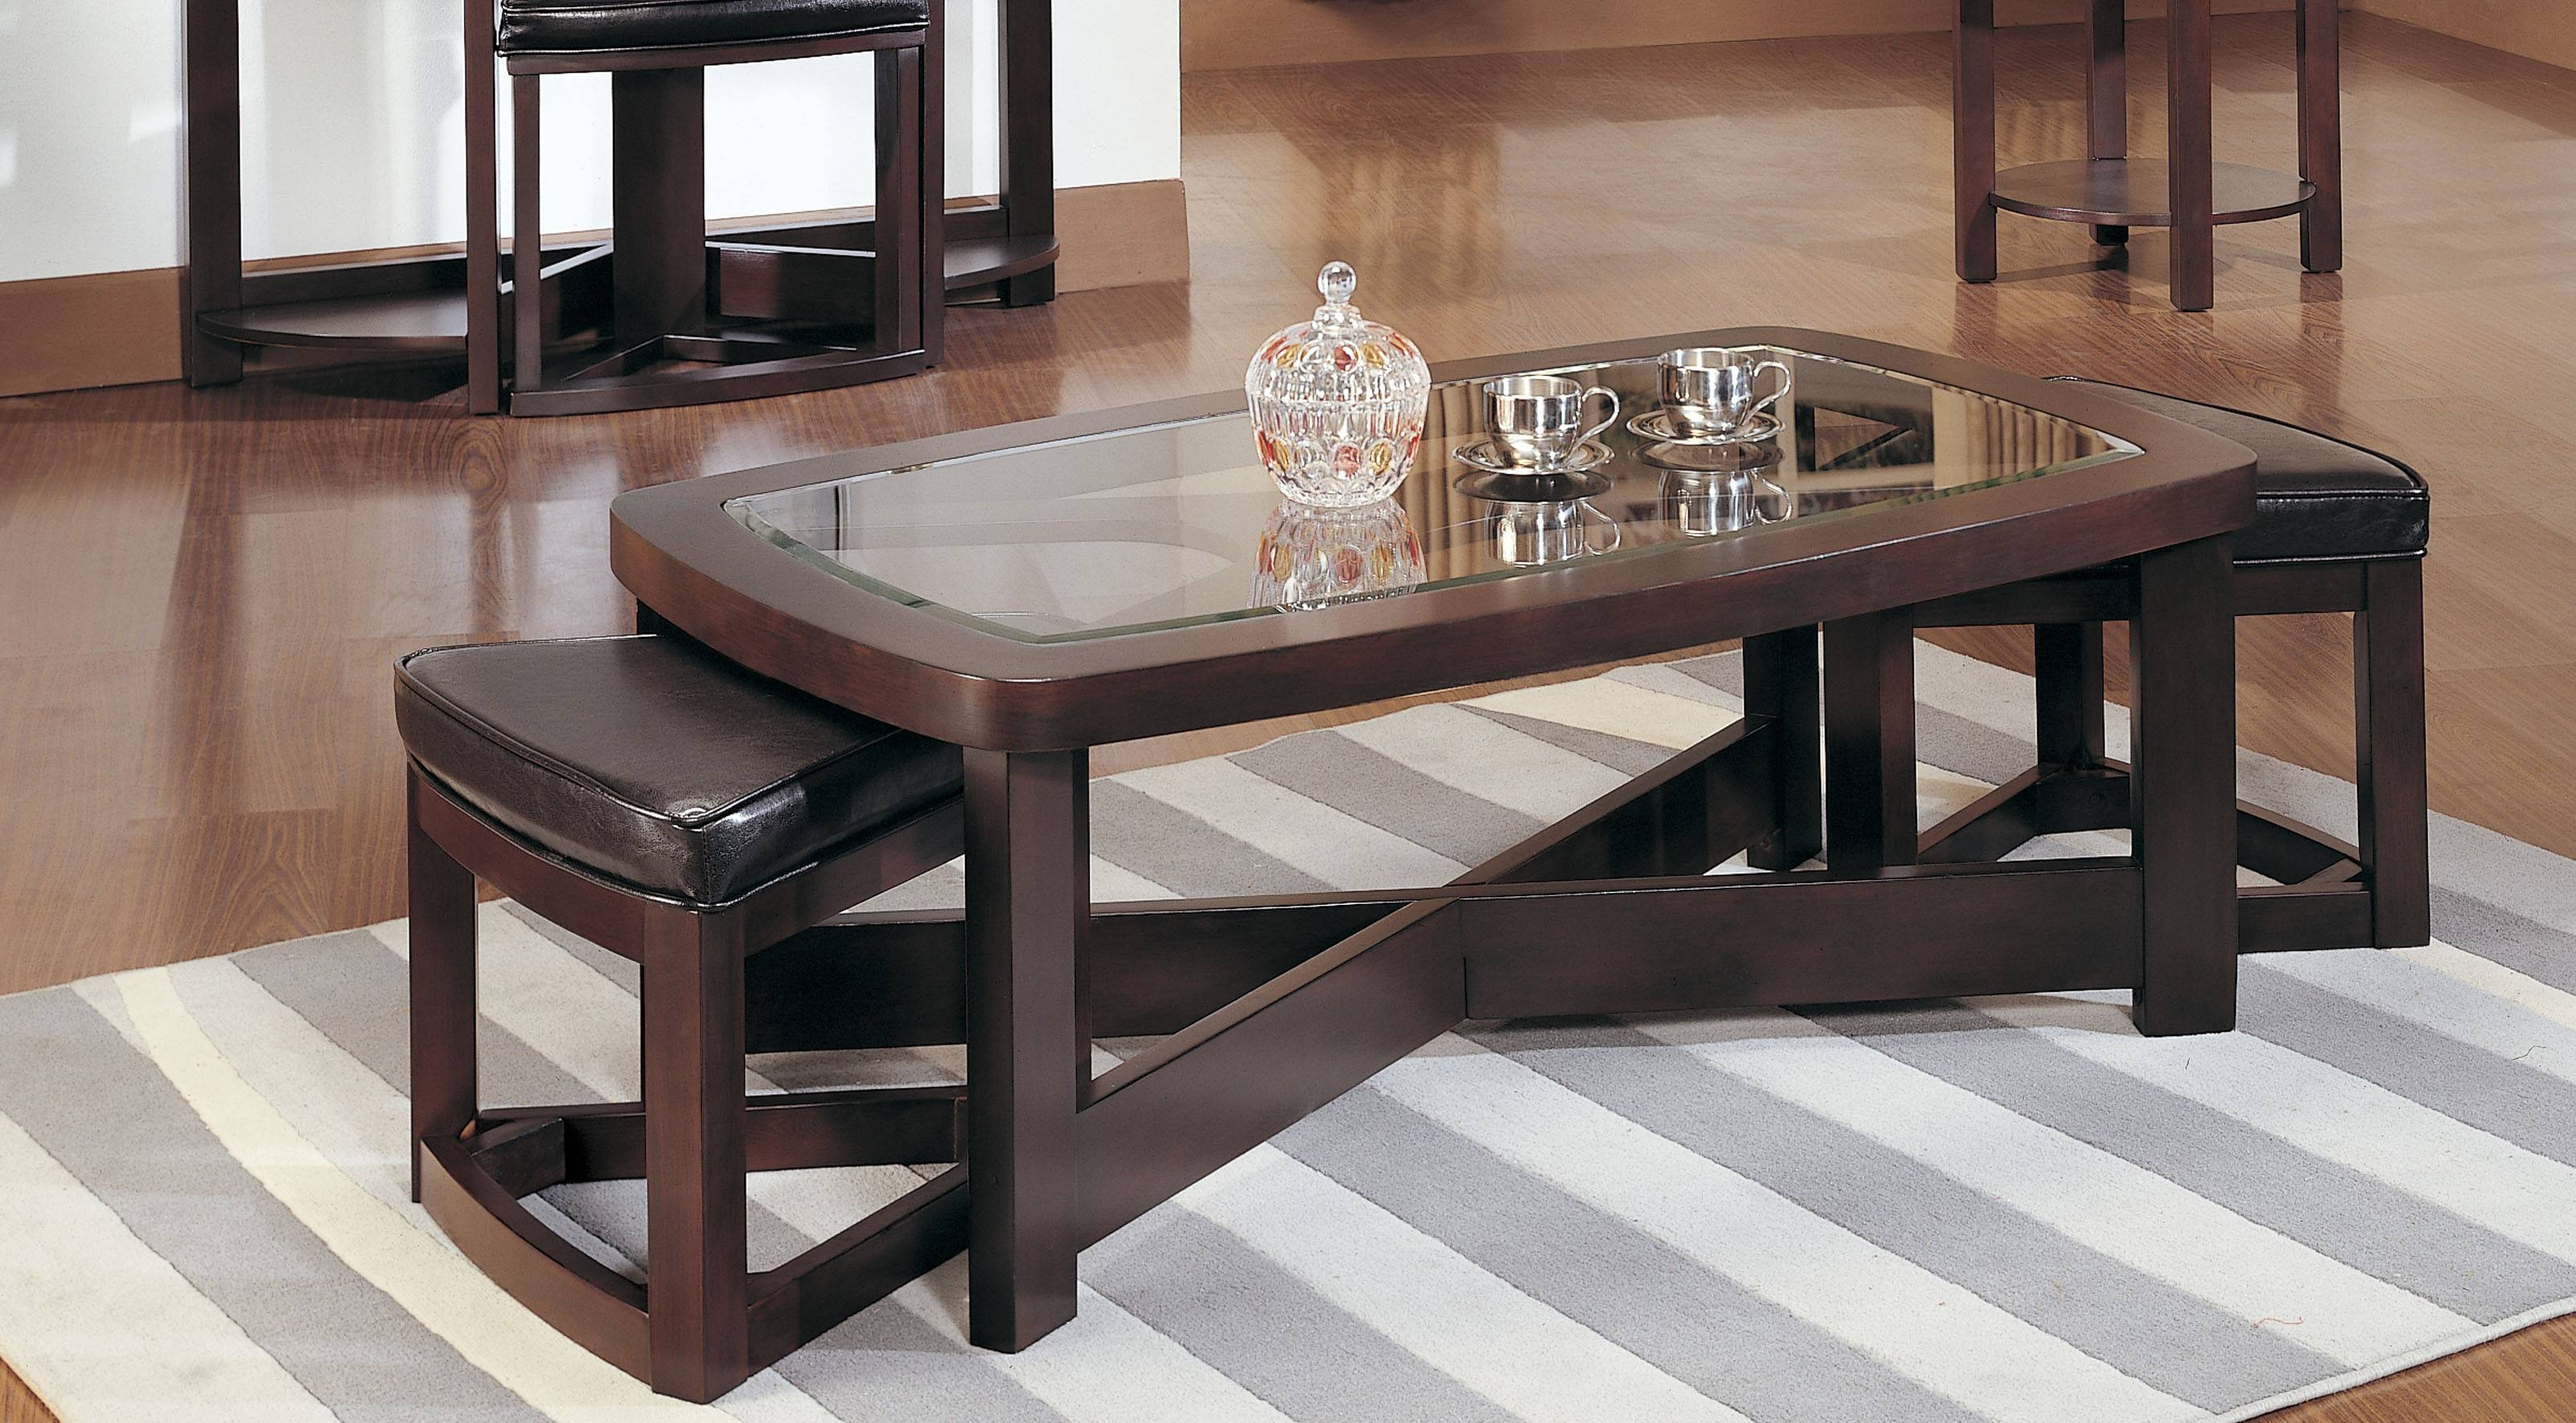 Excellent 3 Piece Living Room Table Sets Ideas – Coffee Table Sets in Cheap Coffee Tables (Image 14 of 30)